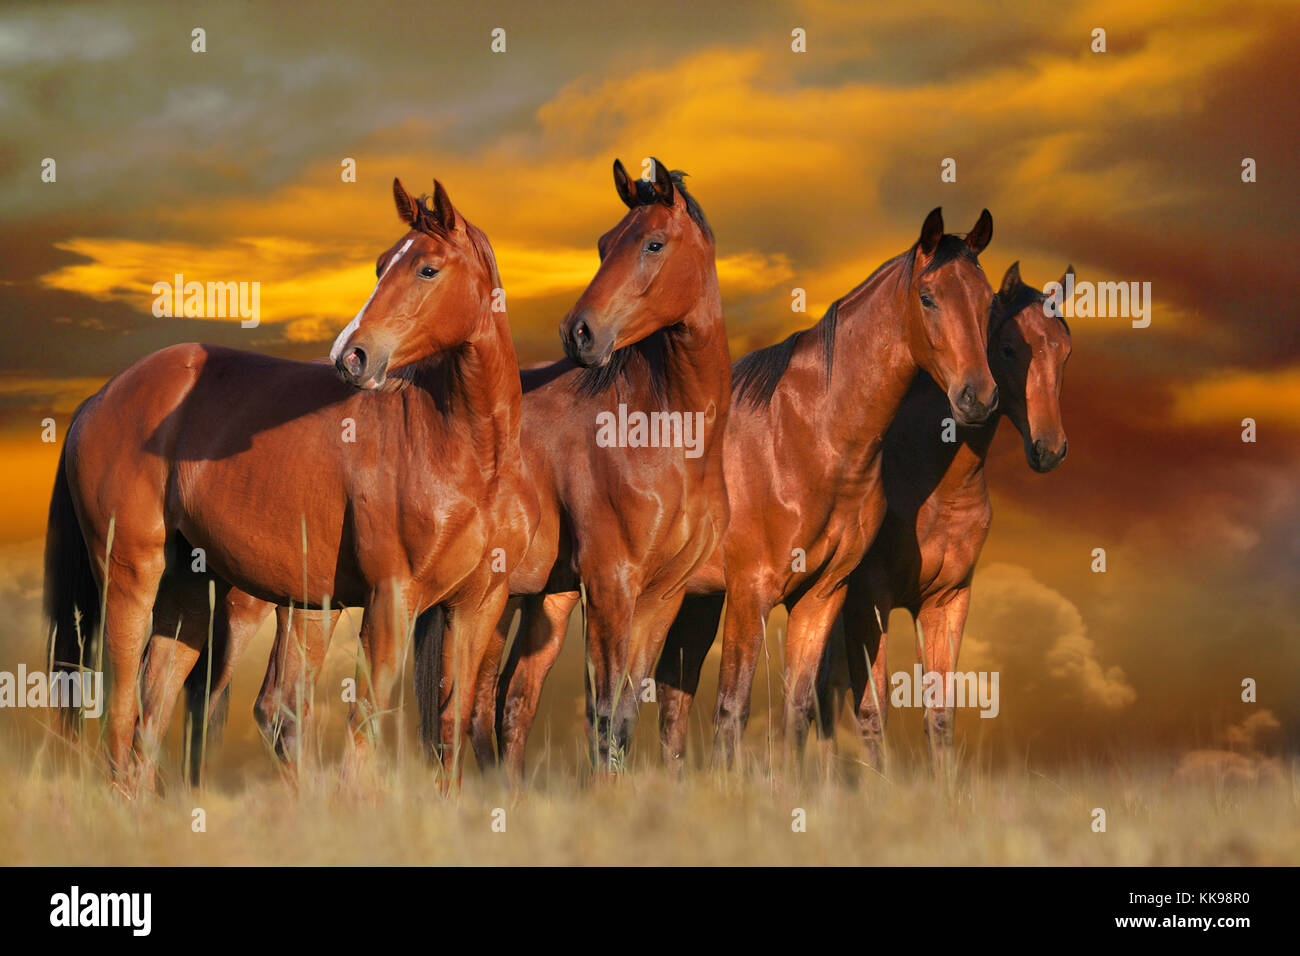 Four beautiful horses standing in a field of long grass with an orange sunset behind them. - Stock Image